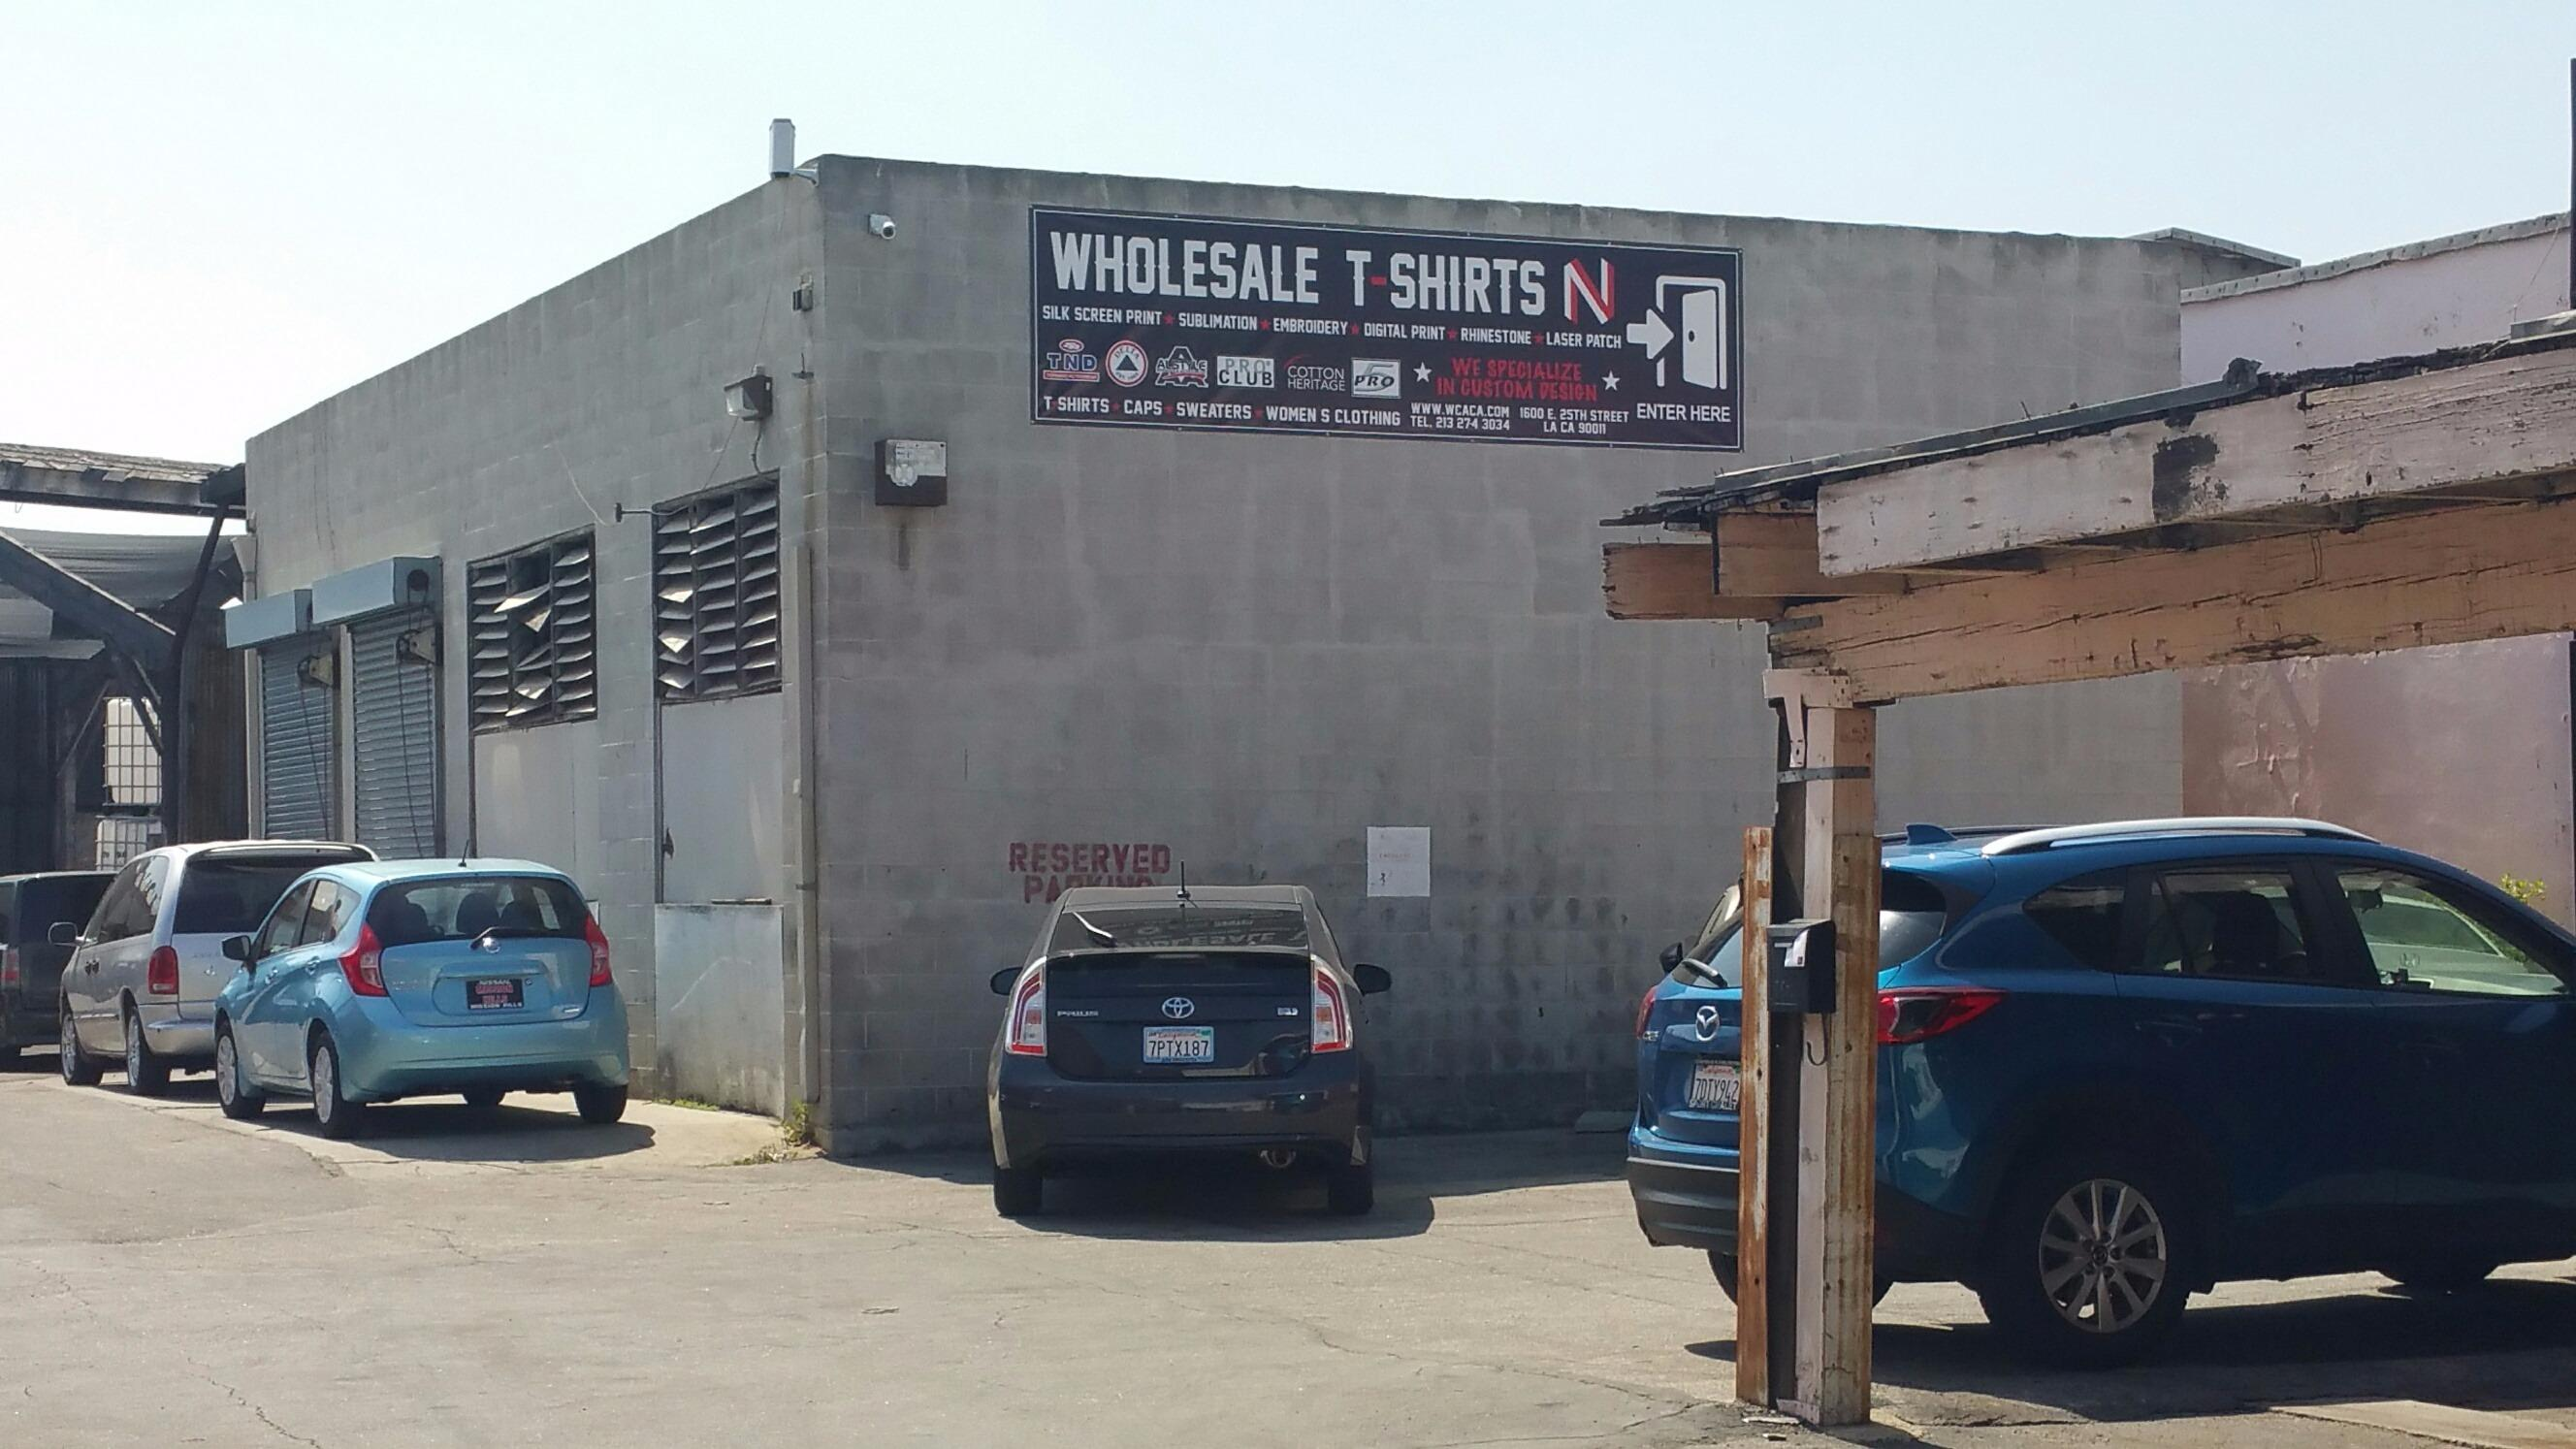 Wholesale t shirts n coupons near me in los angeles 8coupons for Bulk t shirts los angeles